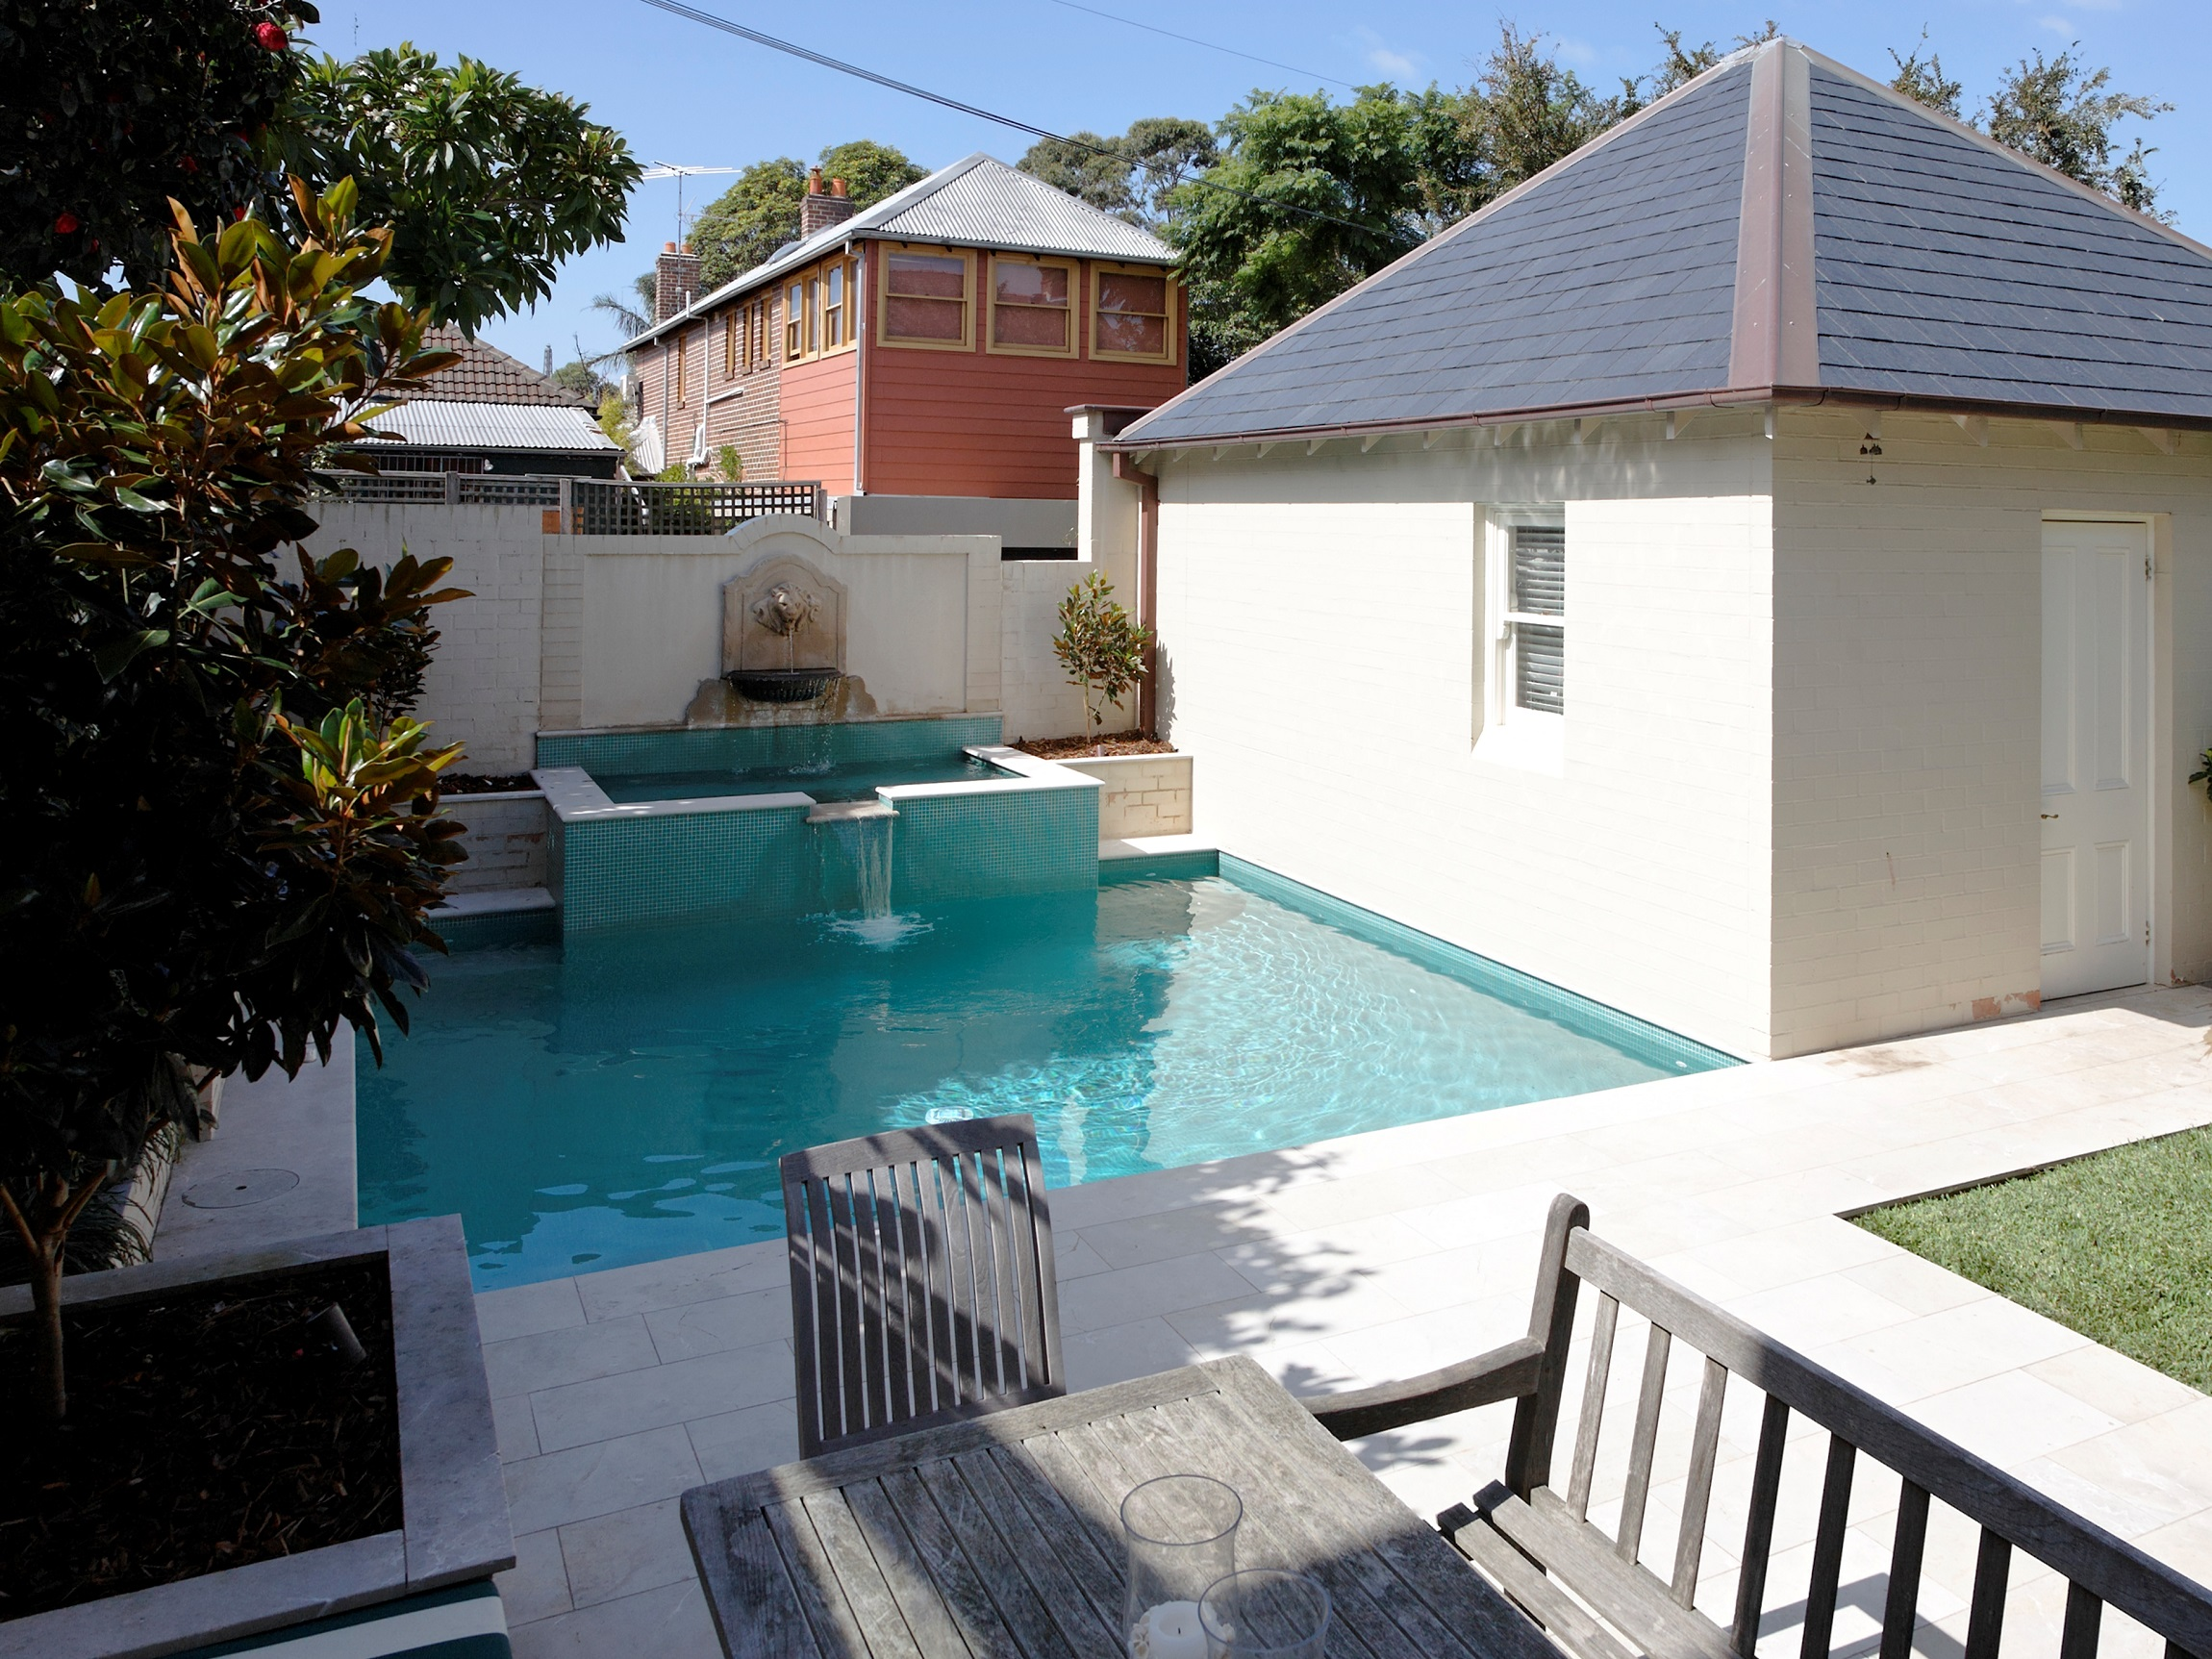 Sydney-Architecture-Swimming-Pool-Heritage-Michael-Bell-Architects(2)